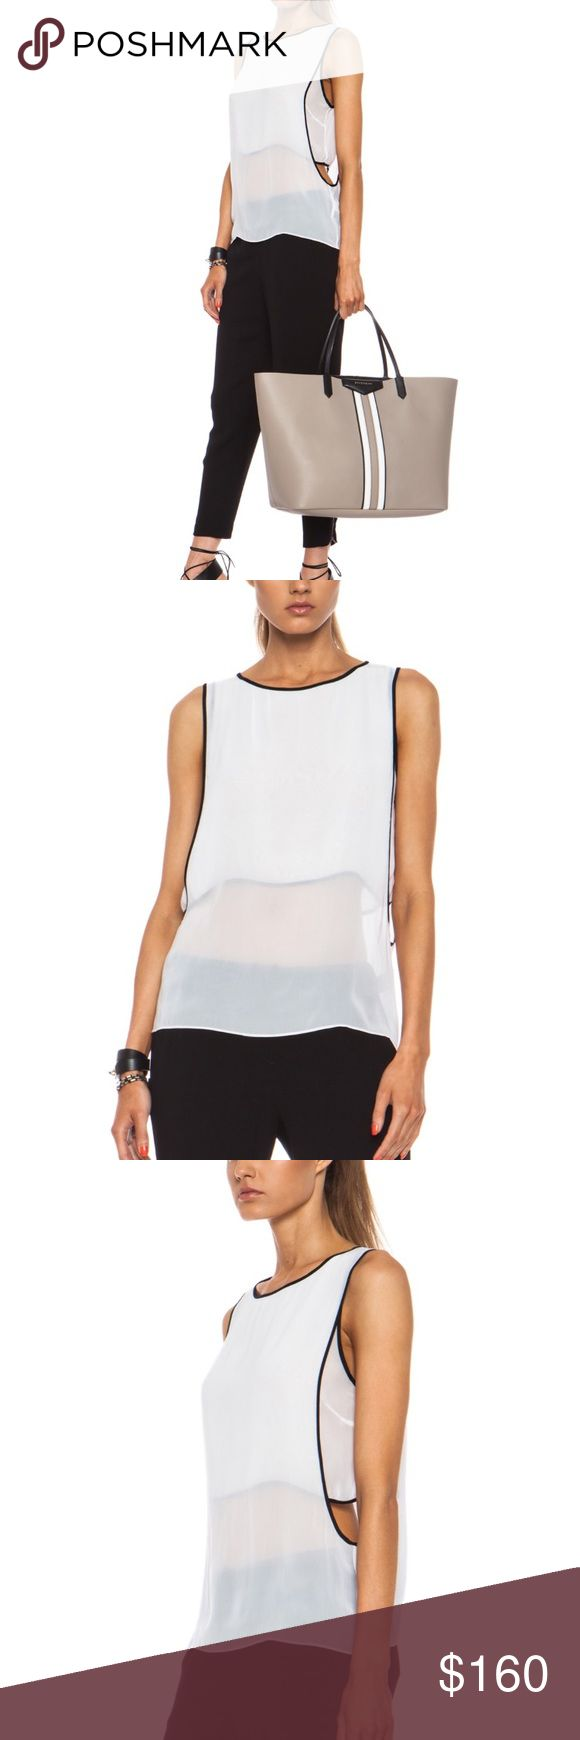 """Helmut Lang Vanish Double Layer Poly Top Polyester, Sleeveless, crewneck, sheer Knit, piping on seams, cutout Layer, loose fit, 34"""" bust, 25"""" length, in great condition Helmut Lang Tops Blouses"""